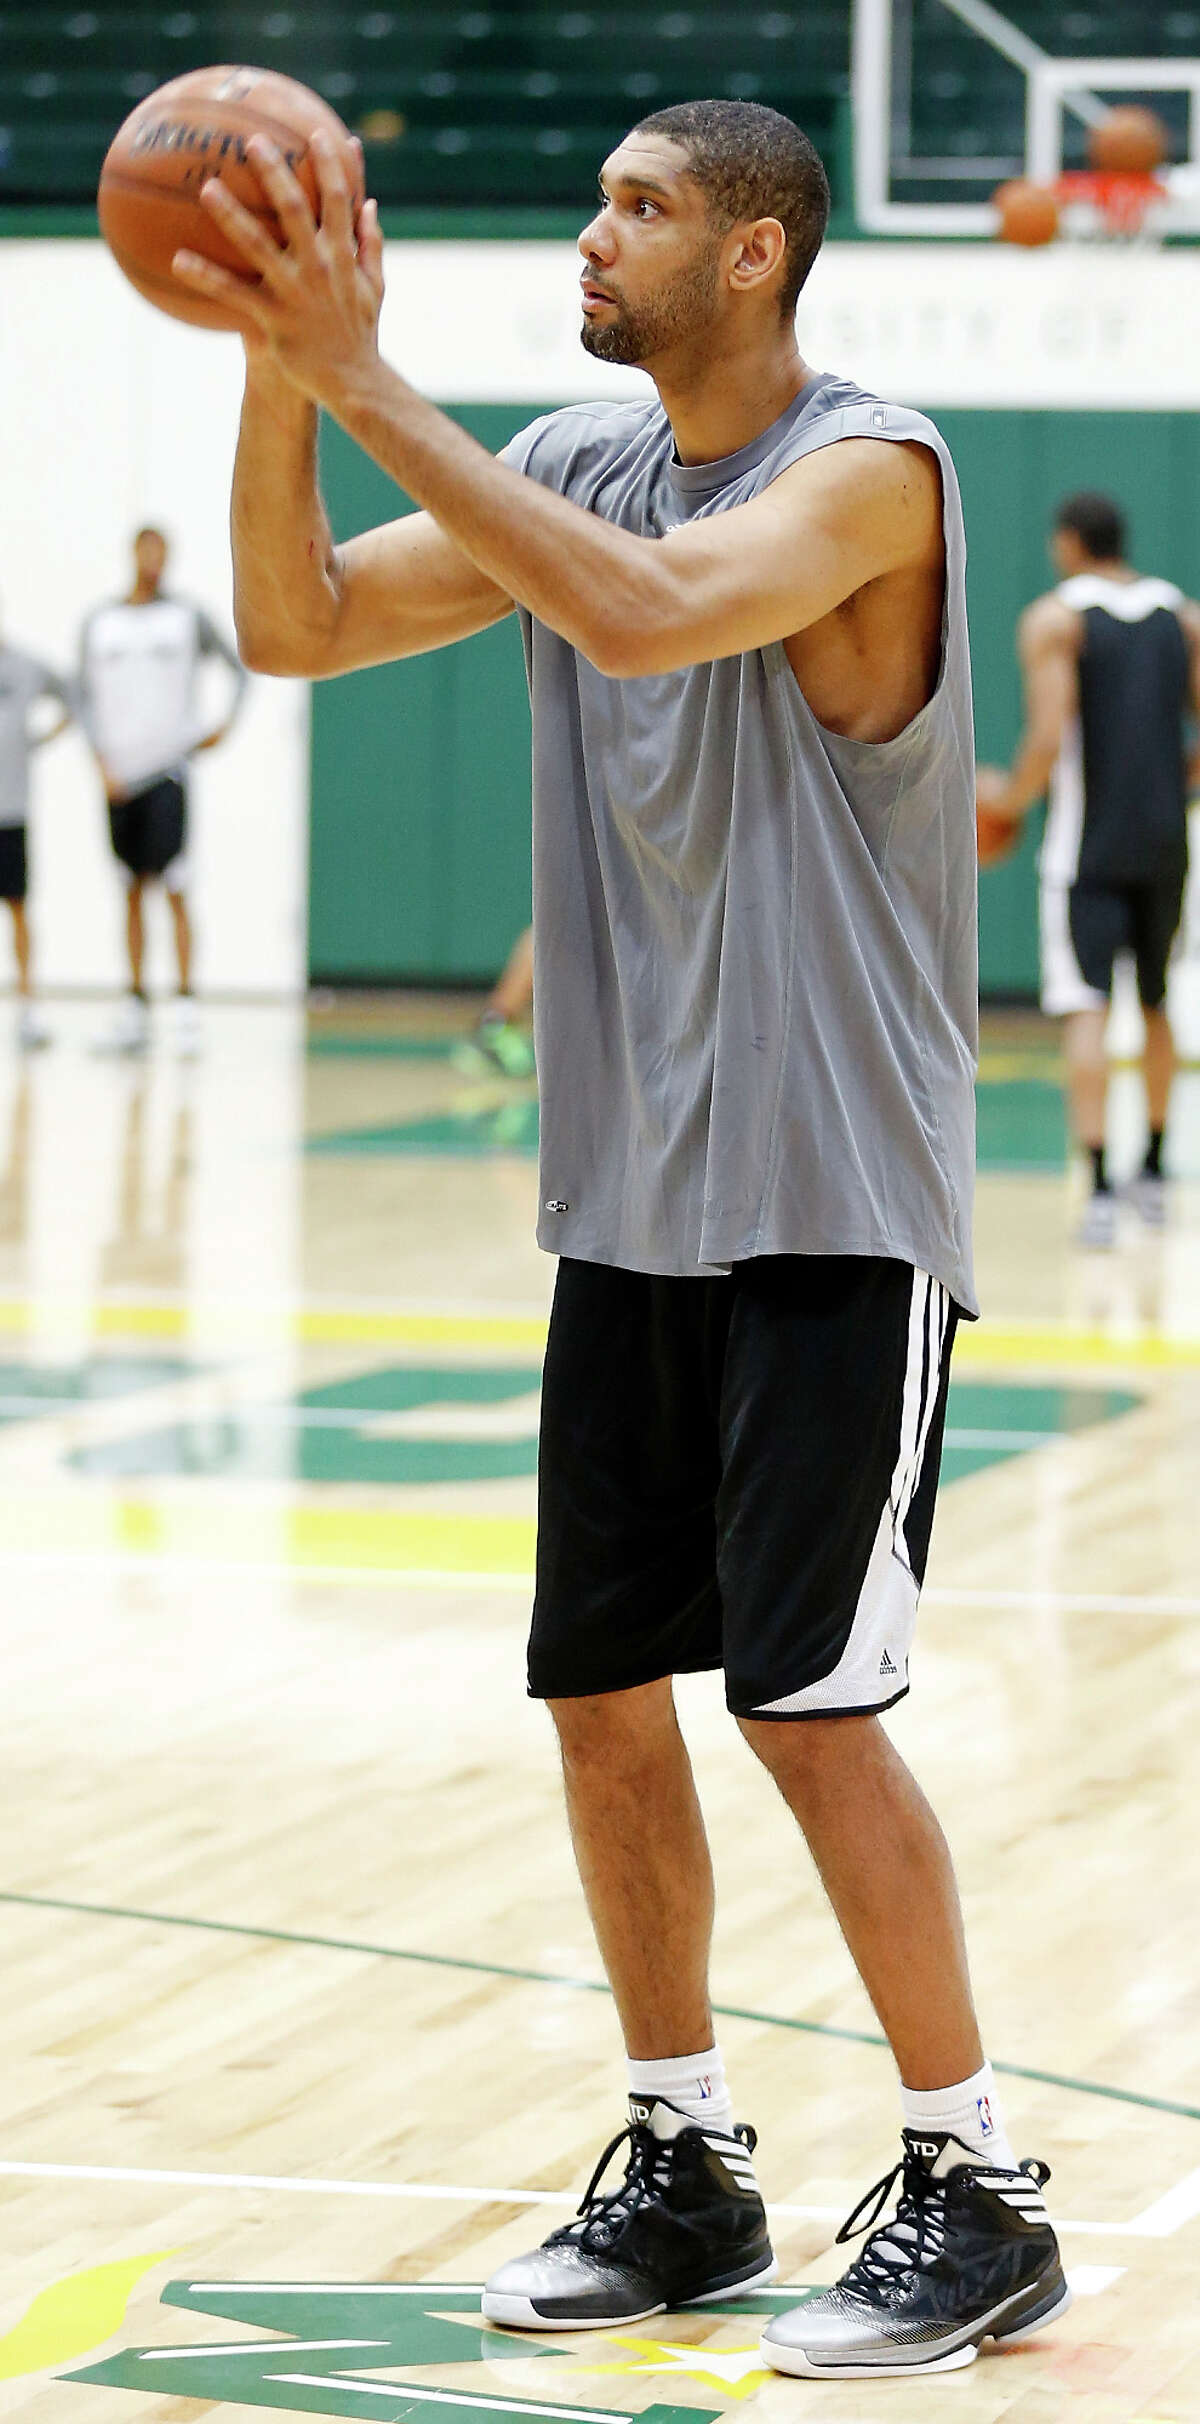 San Antonio Spurs' Tim Duncan shoots during practice Saturday May 11, 2013 at the War Memorial Gymnasium on the University of San Francisco campus in San Francisco, CA